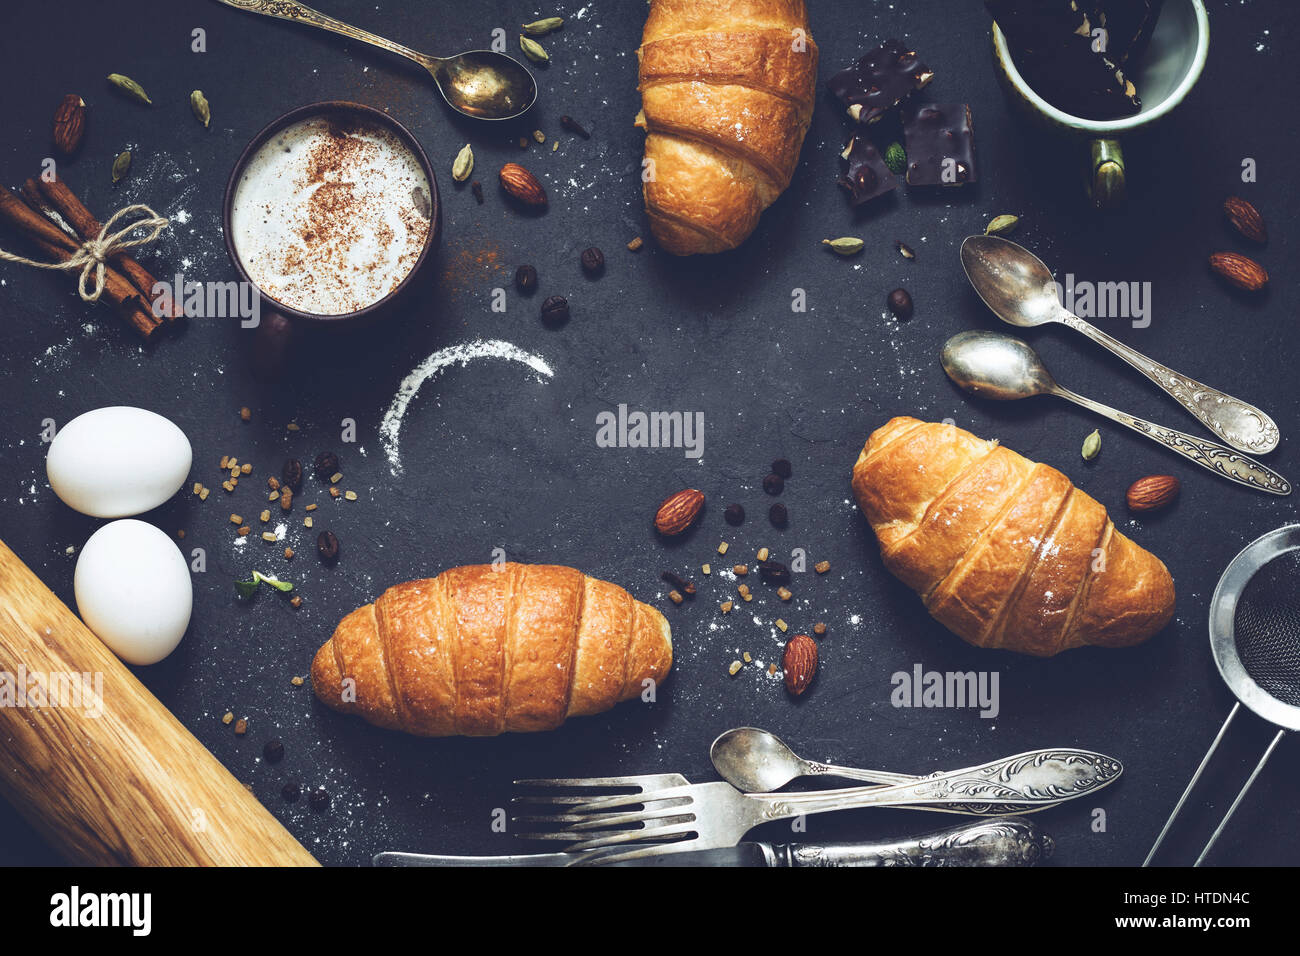 Coffee, croissants, chocolate, spices, nuts and vintage cutlery. Flat lay composition of sweet breakfast food on Stock Photo